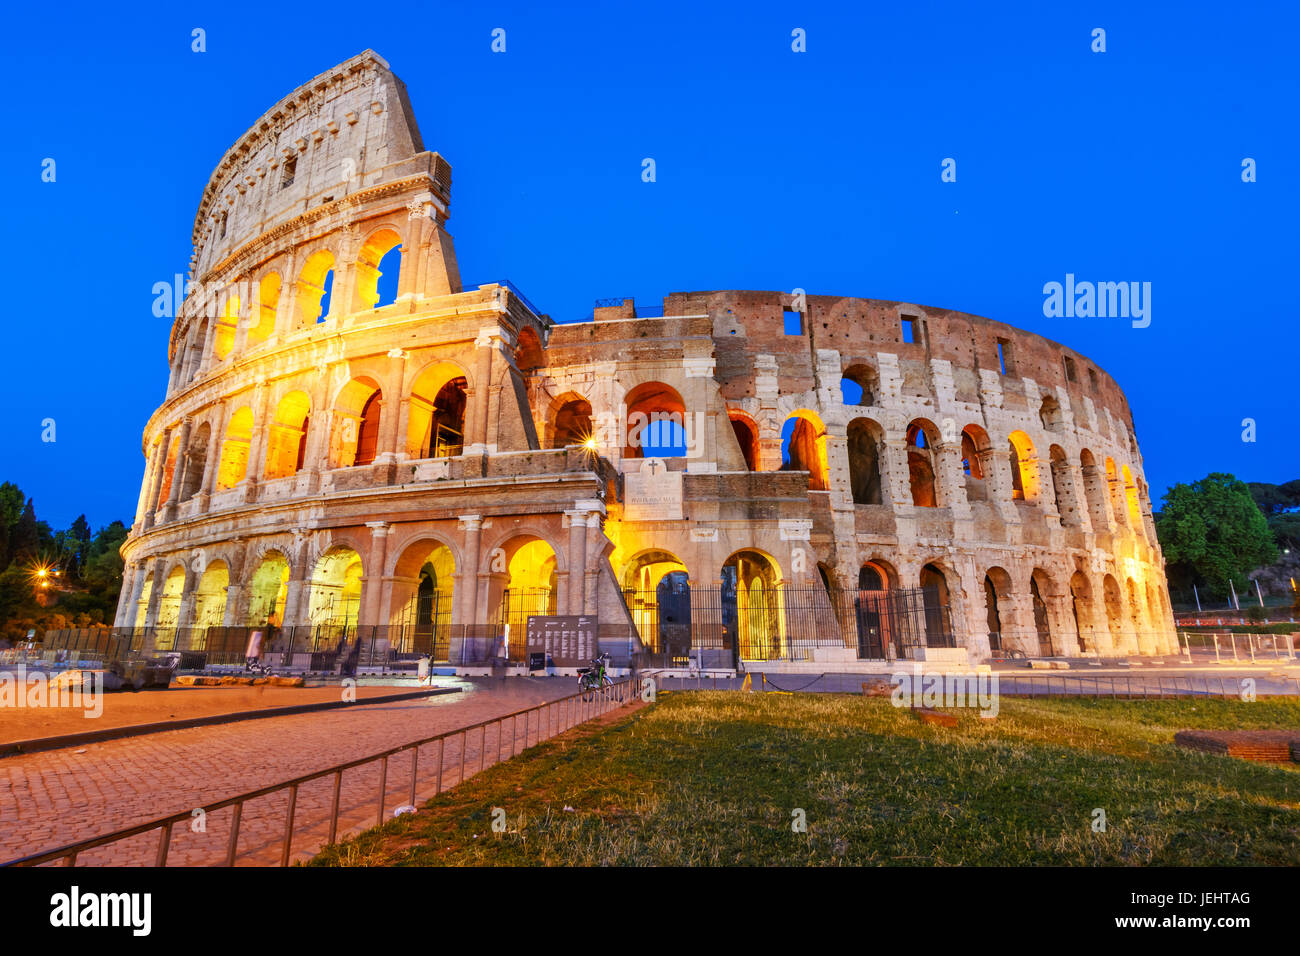 Night view of the Colosseum, an elliptical amphitheatre in the centre of Rome,Italy.Built of concrete and stone,it - Stock Image